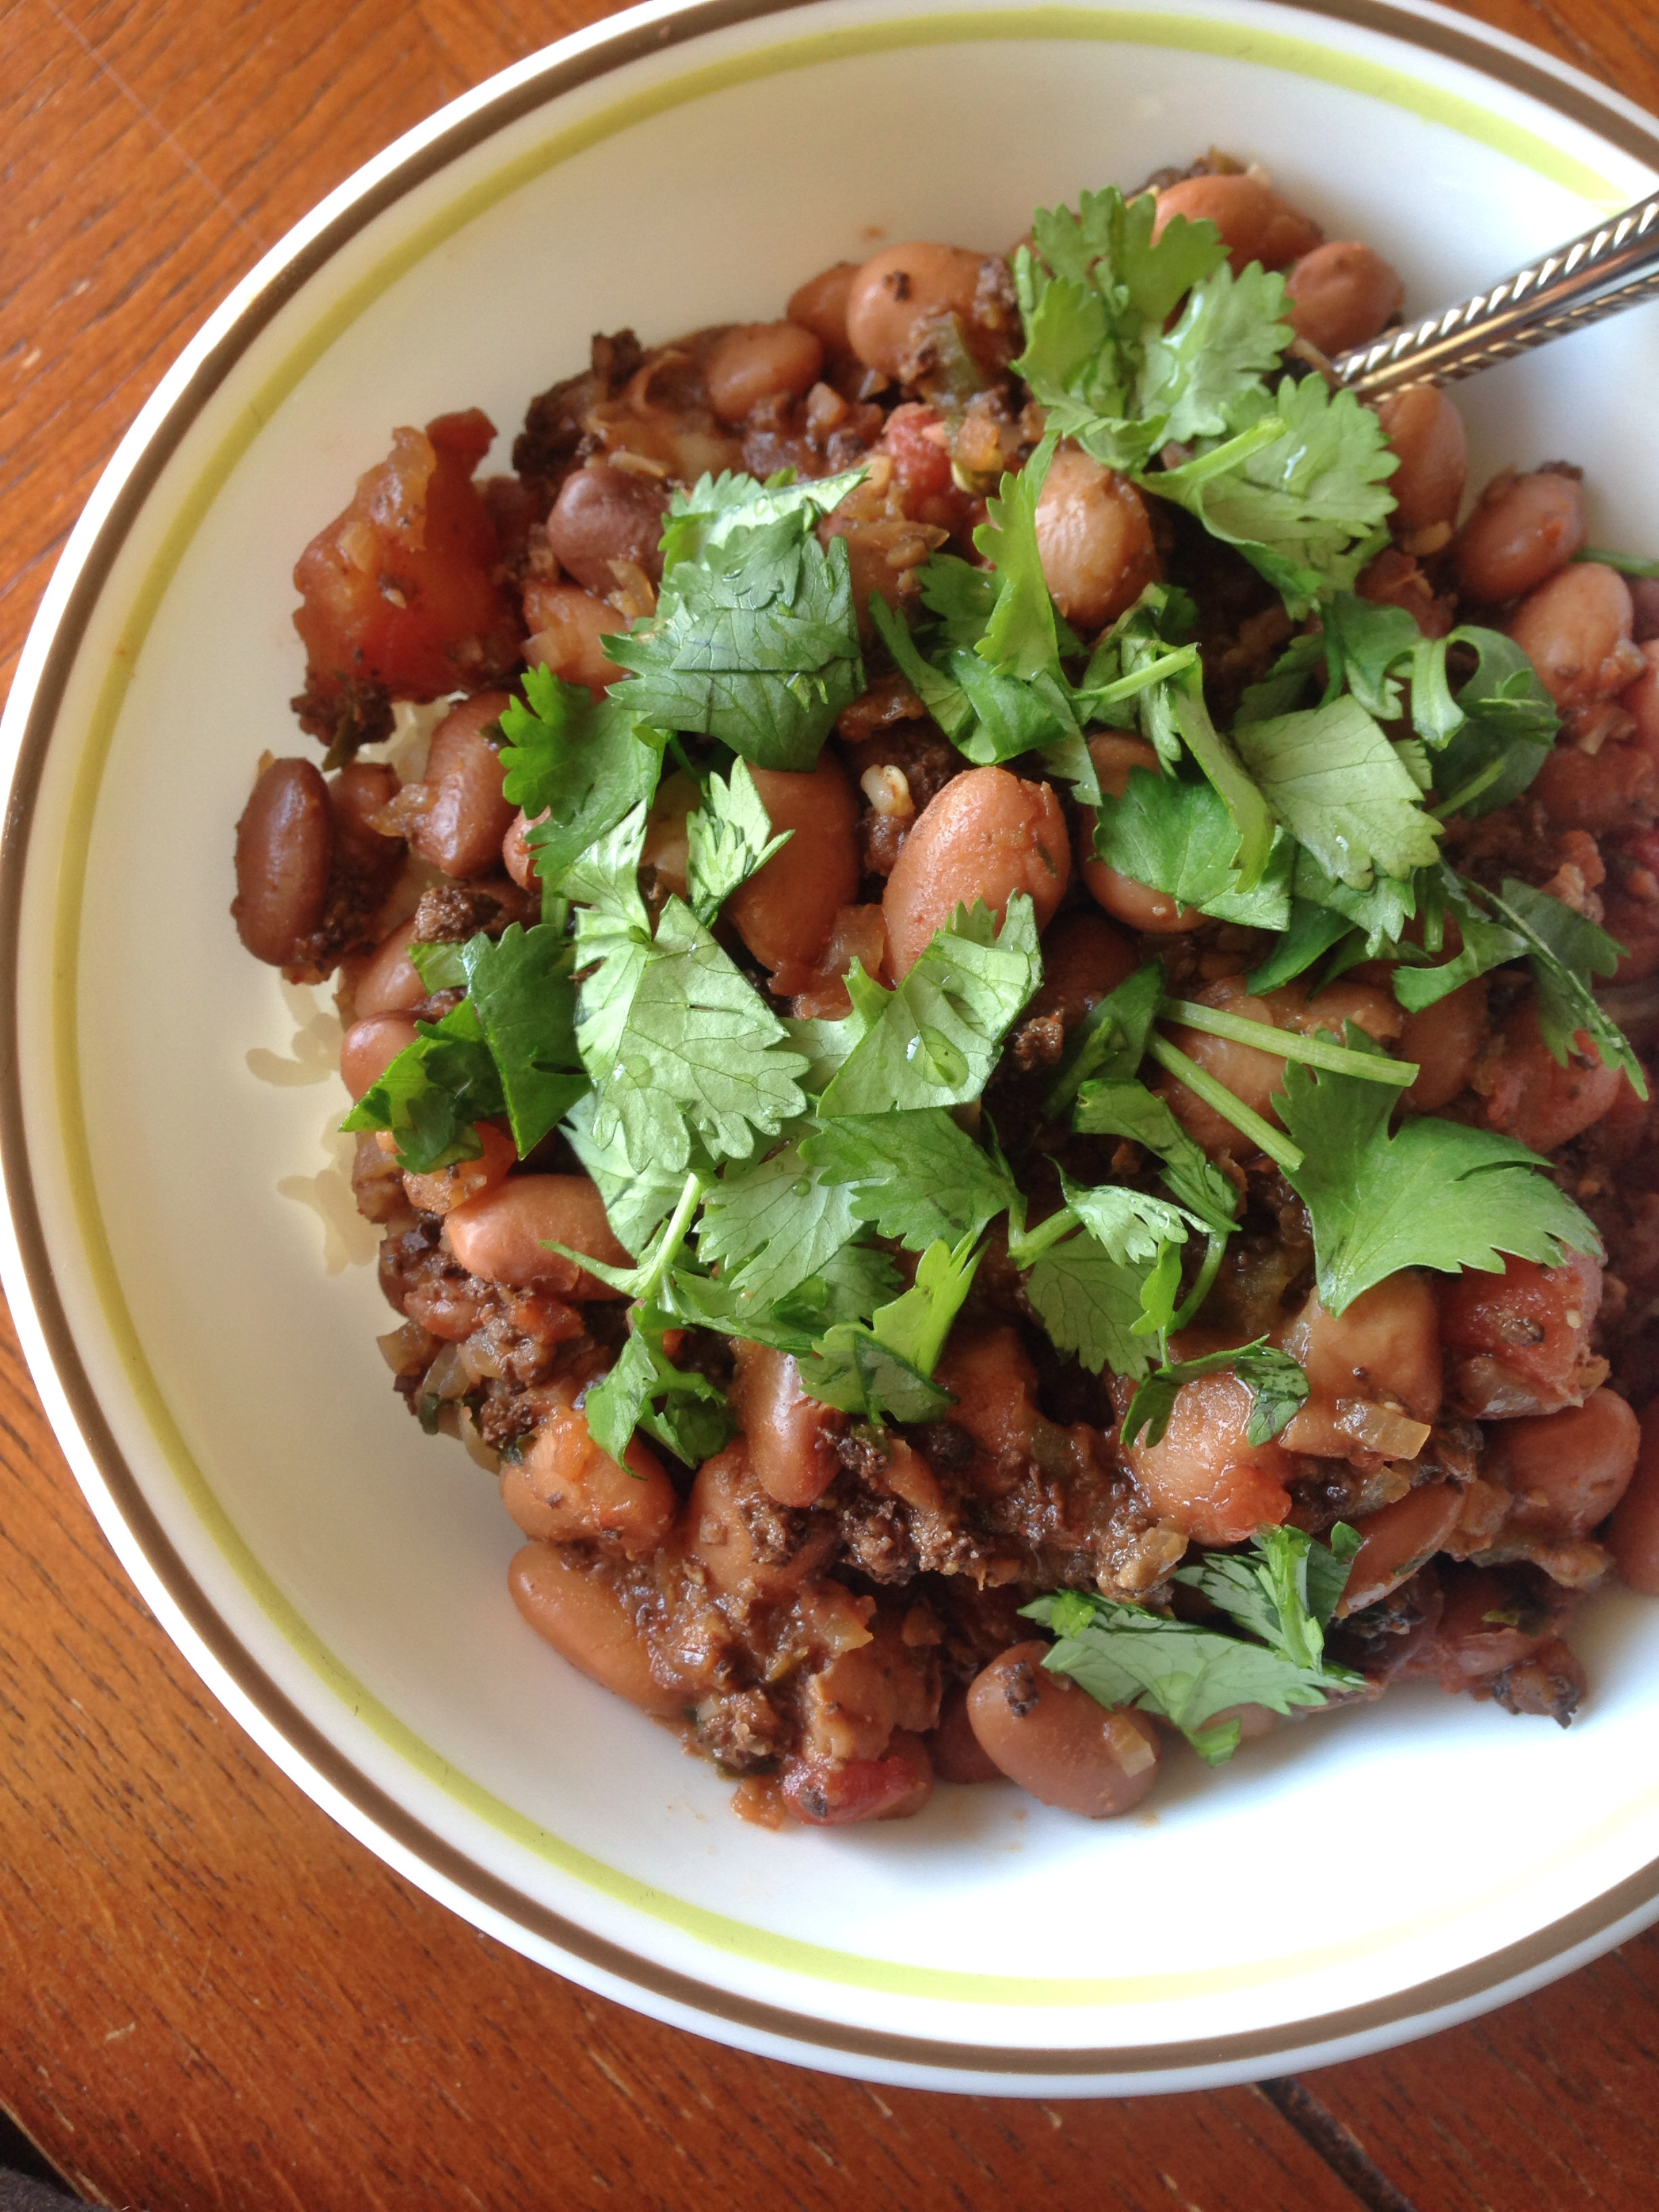 Vegan Ground Beef  fort Food Chili Beans with Vegan Ground Beef